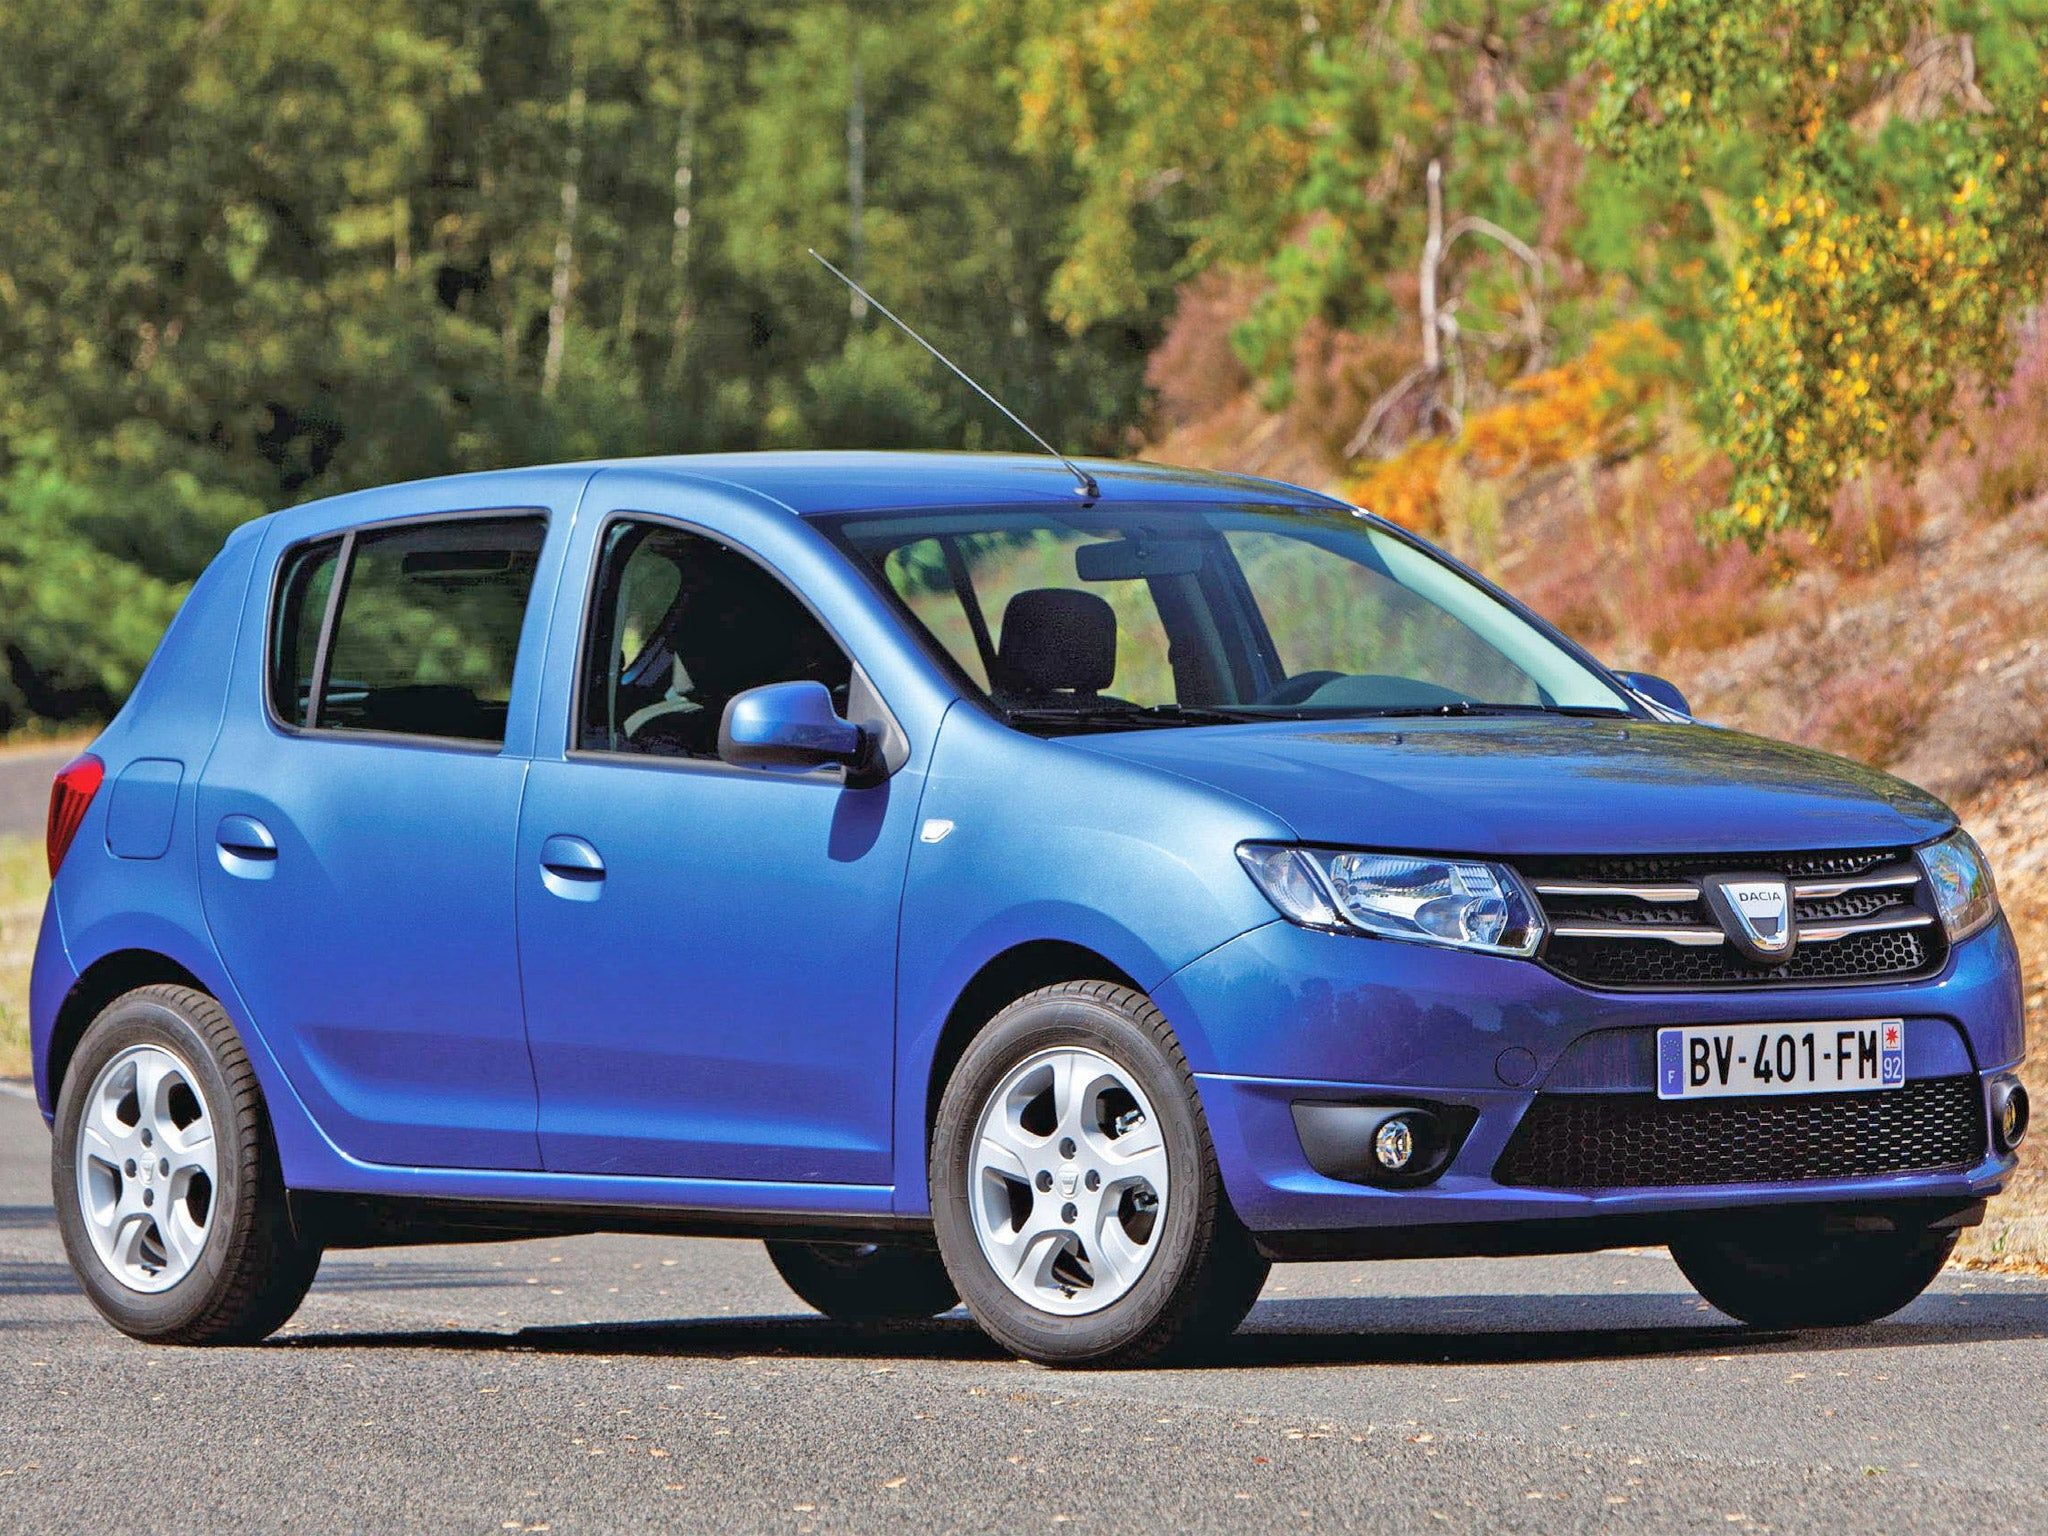 dacia sandero laureate tce 90 eco2 road test the independent. Black Bedroom Furniture Sets. Home Design Ideas